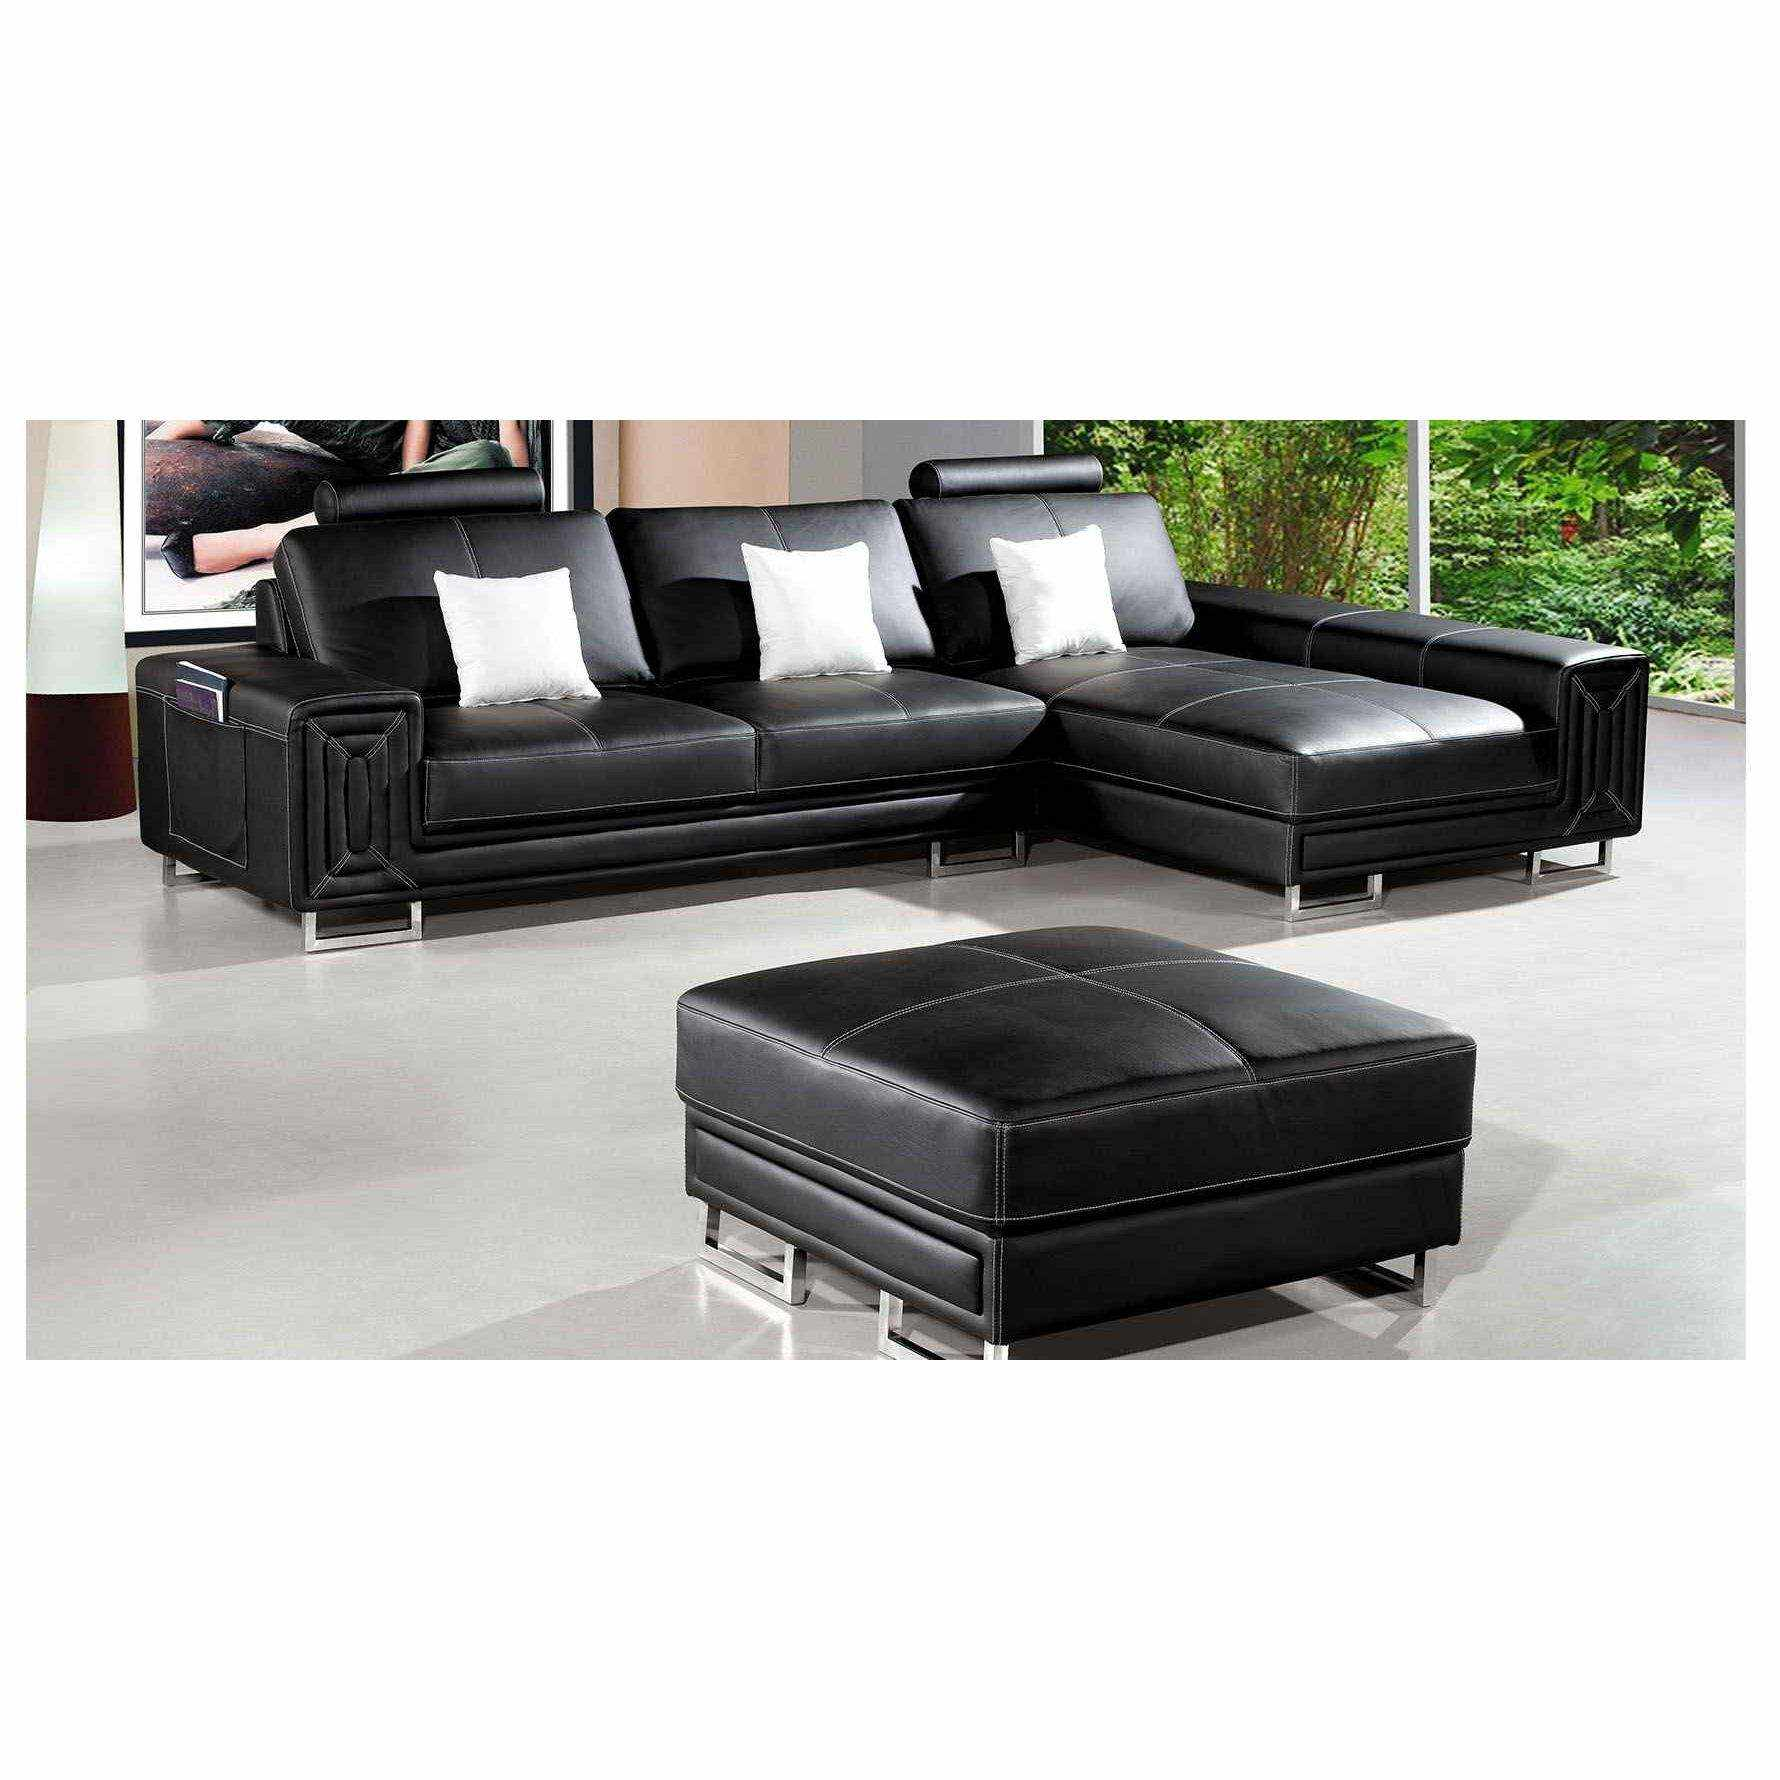 deco in paris canape cuir d angle noir avec pouf tetieres relax oxford angle droite can. Black Bedroom Furniture Sets. Home Design Ideas